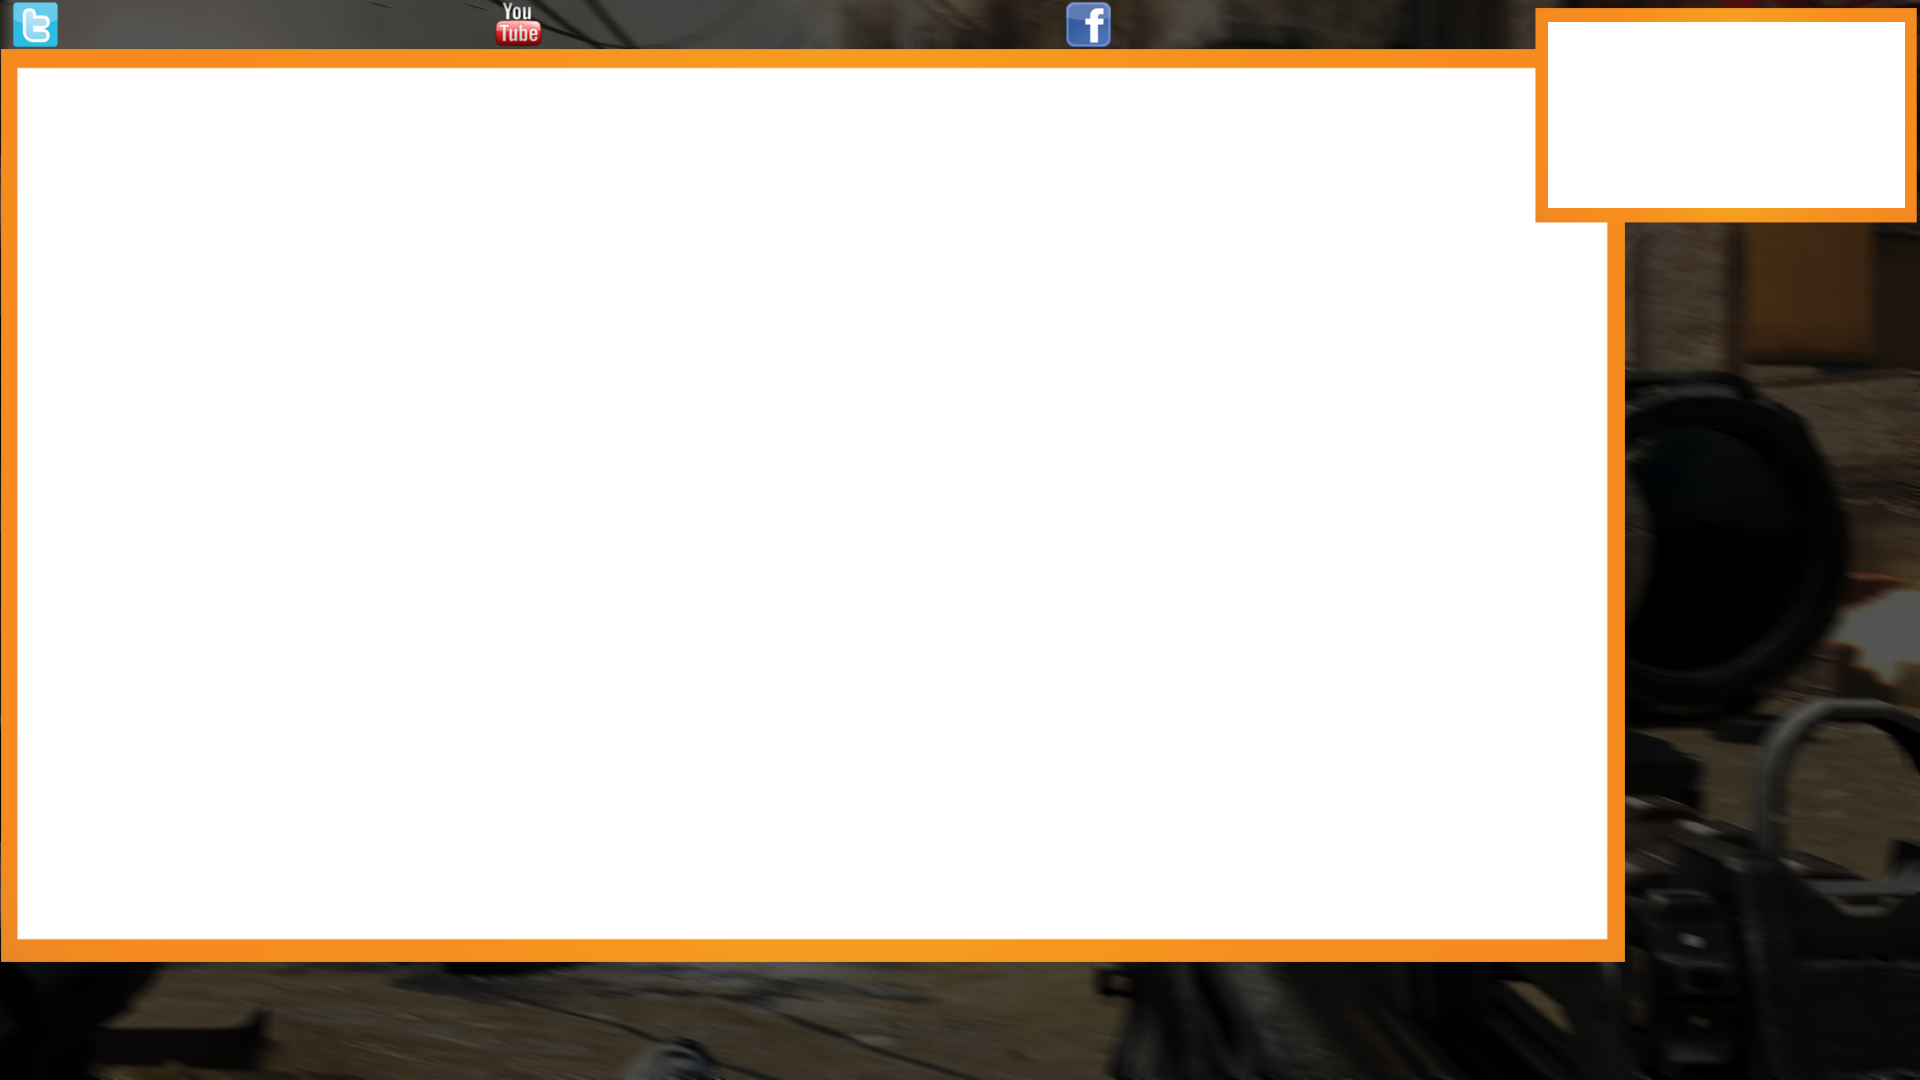 Black Ops 3 Twitch Overlay